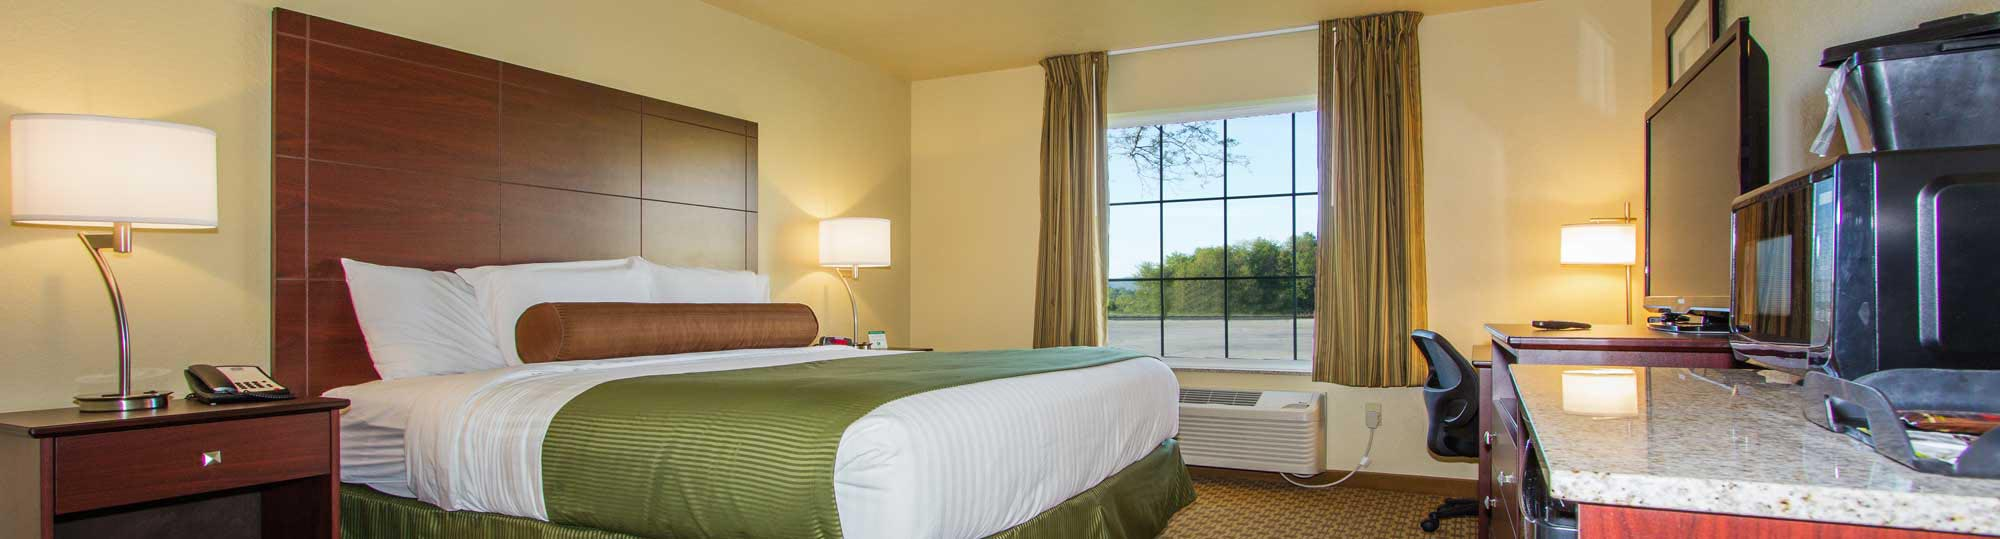 Cobblestone Inn and Suites Corry